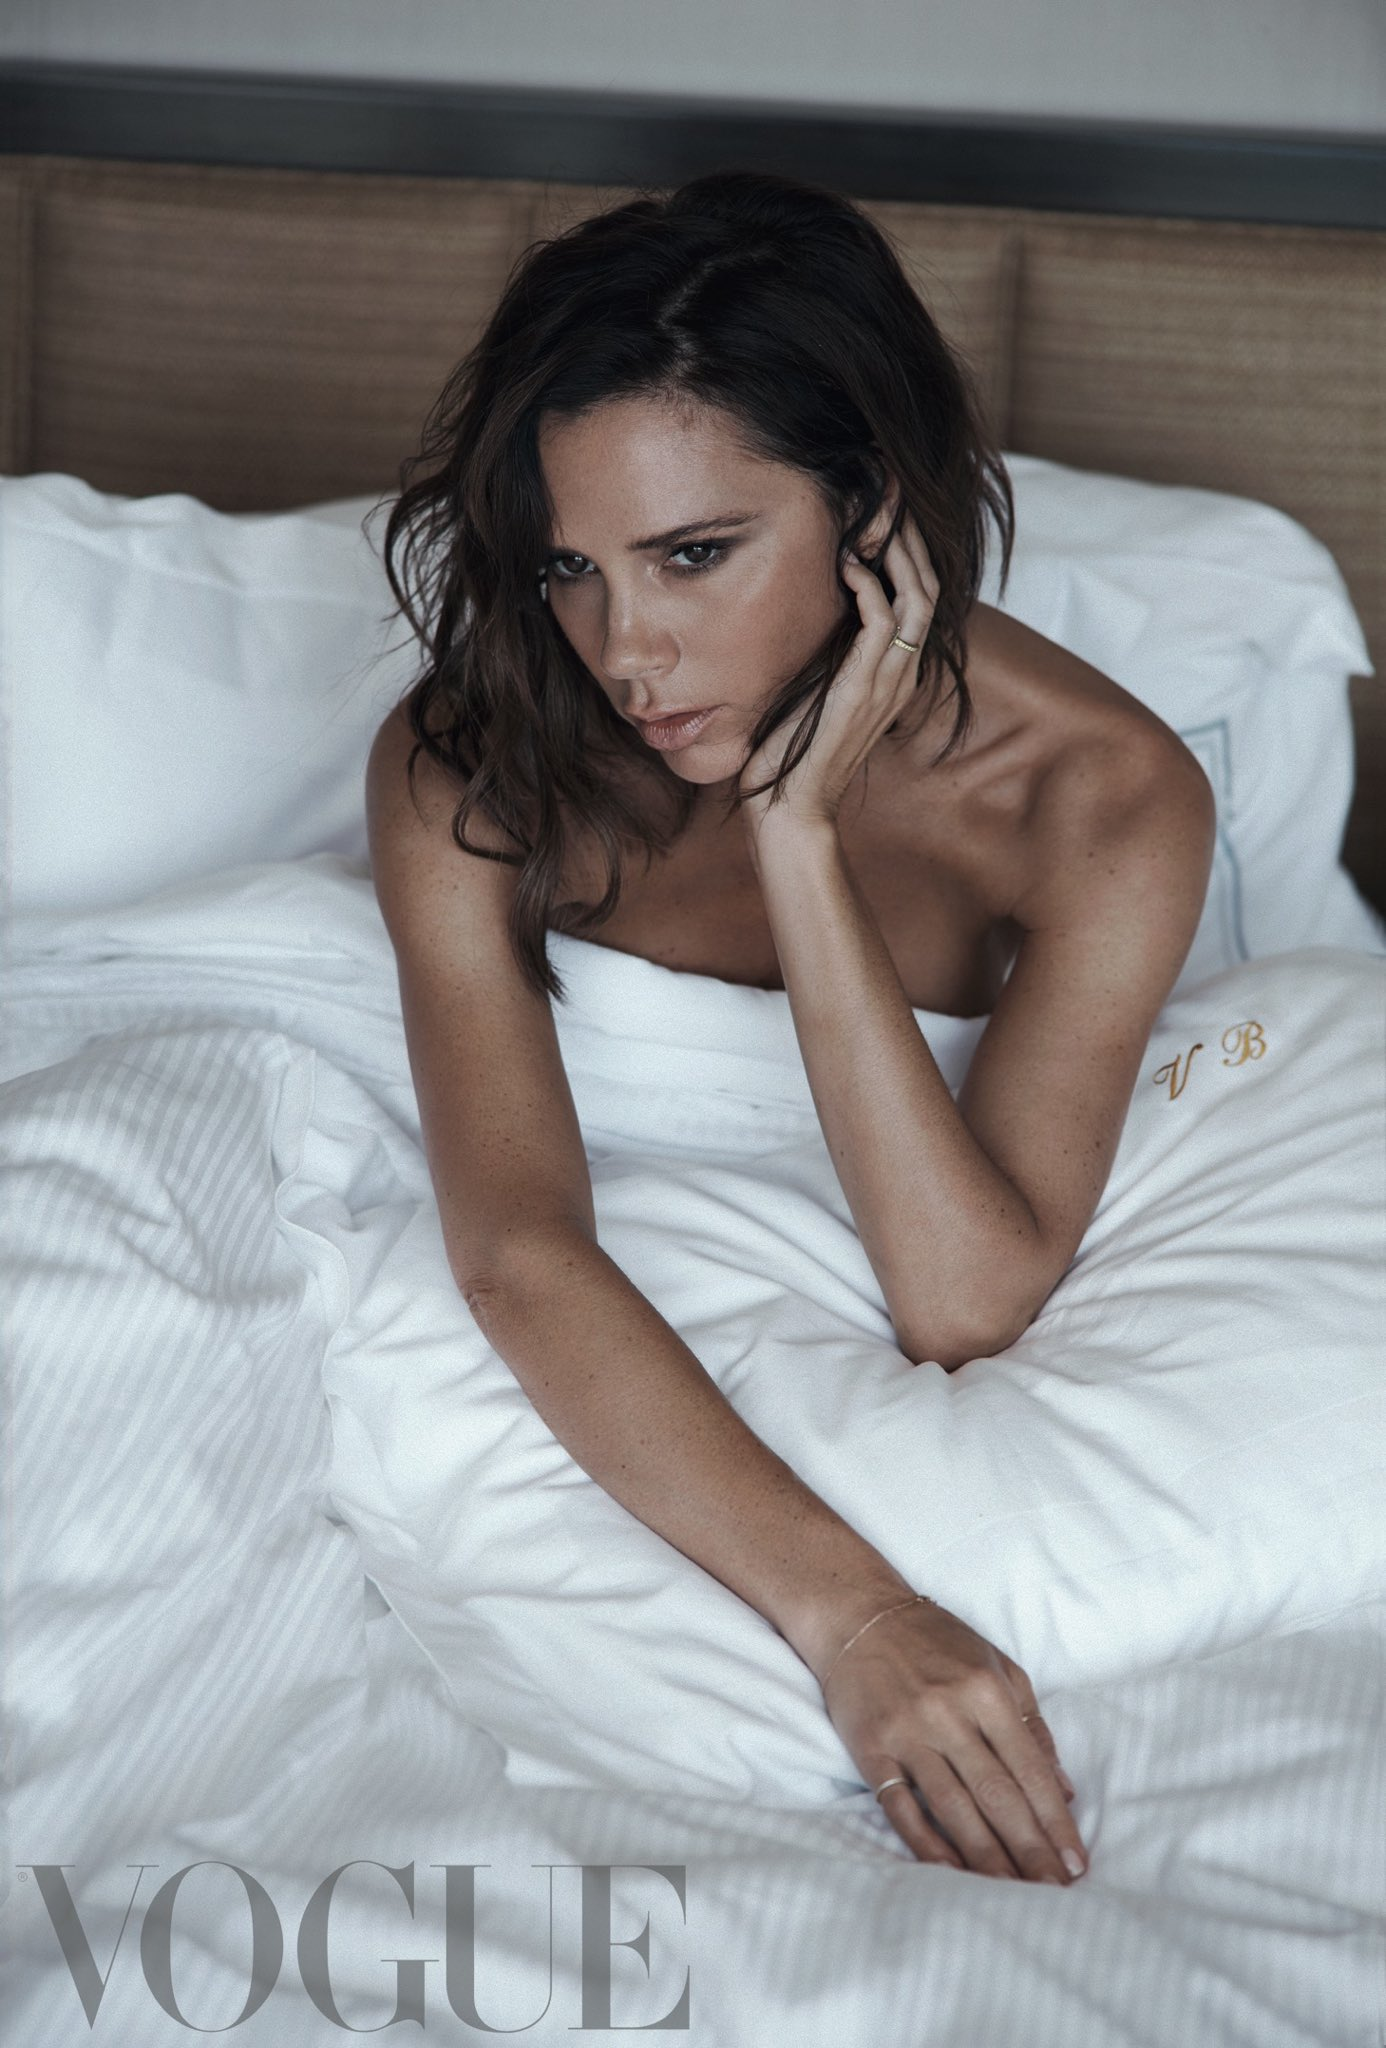 "Victoria Beckham on Twitter: ""Loved working on this shoot ... Victoria Beckham"